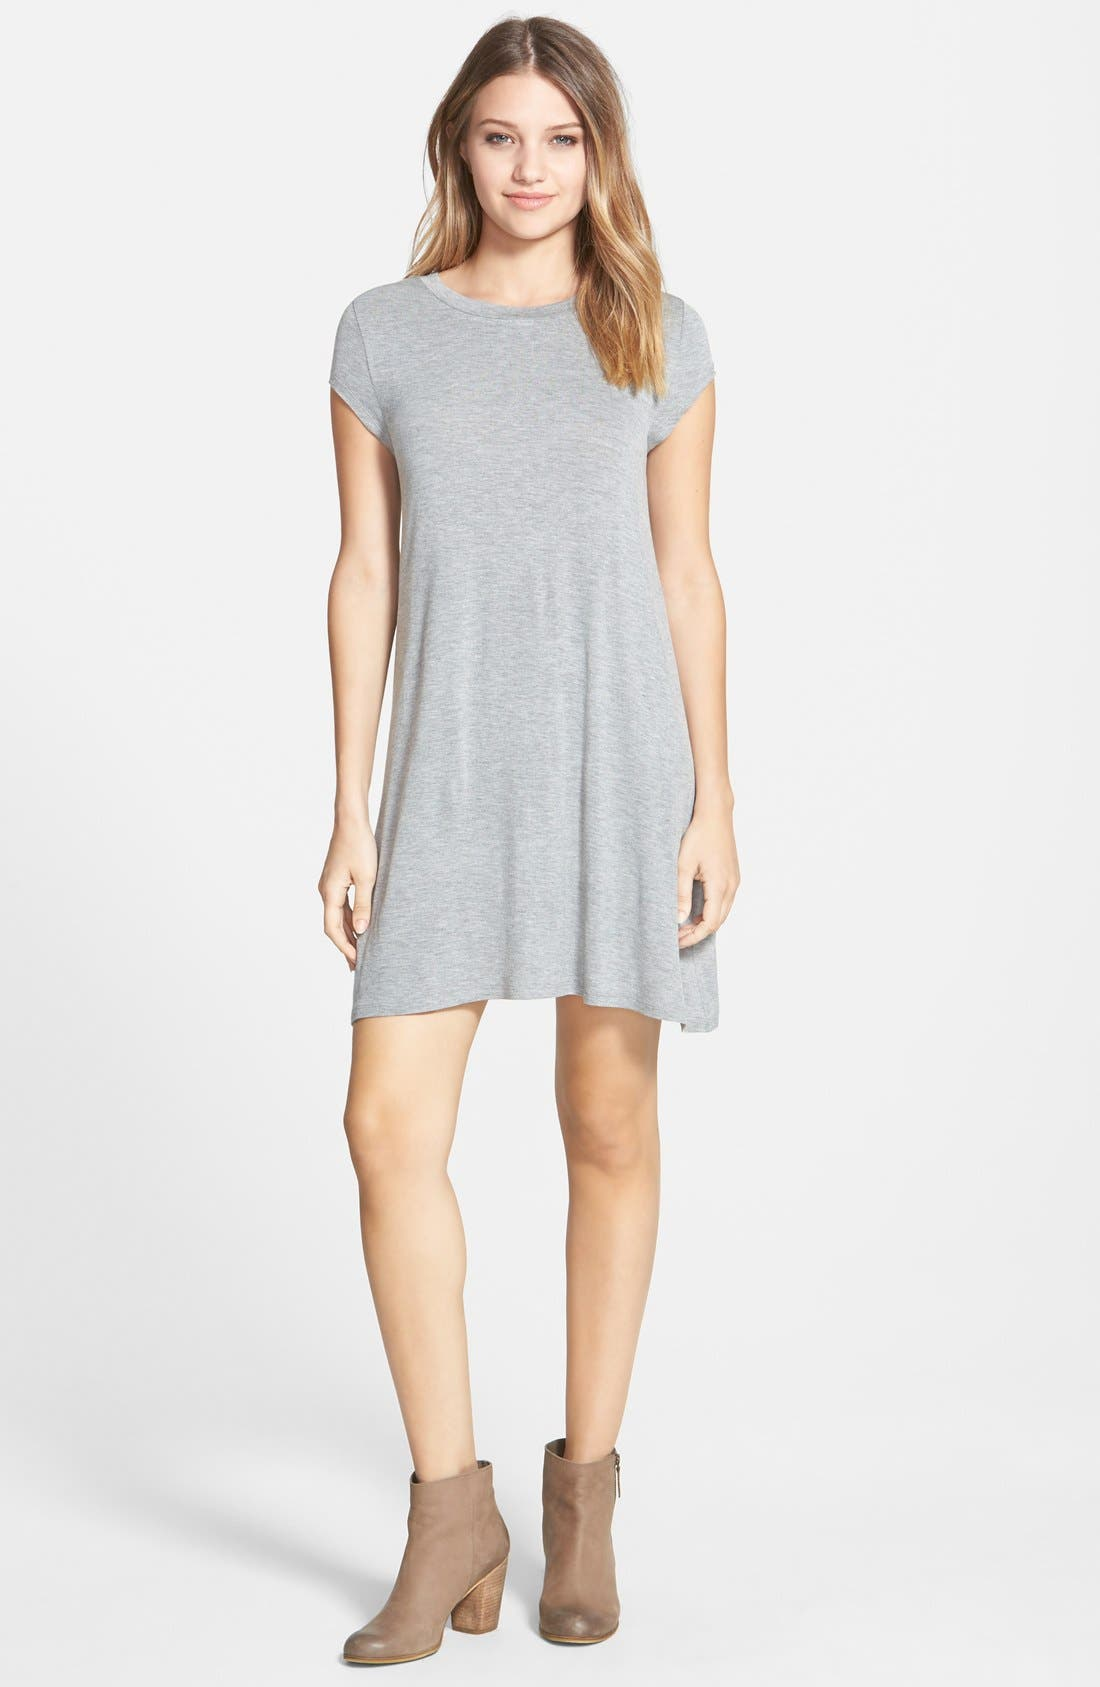 Main Image - Billabong 'Last Minute' T-Shirt Dress